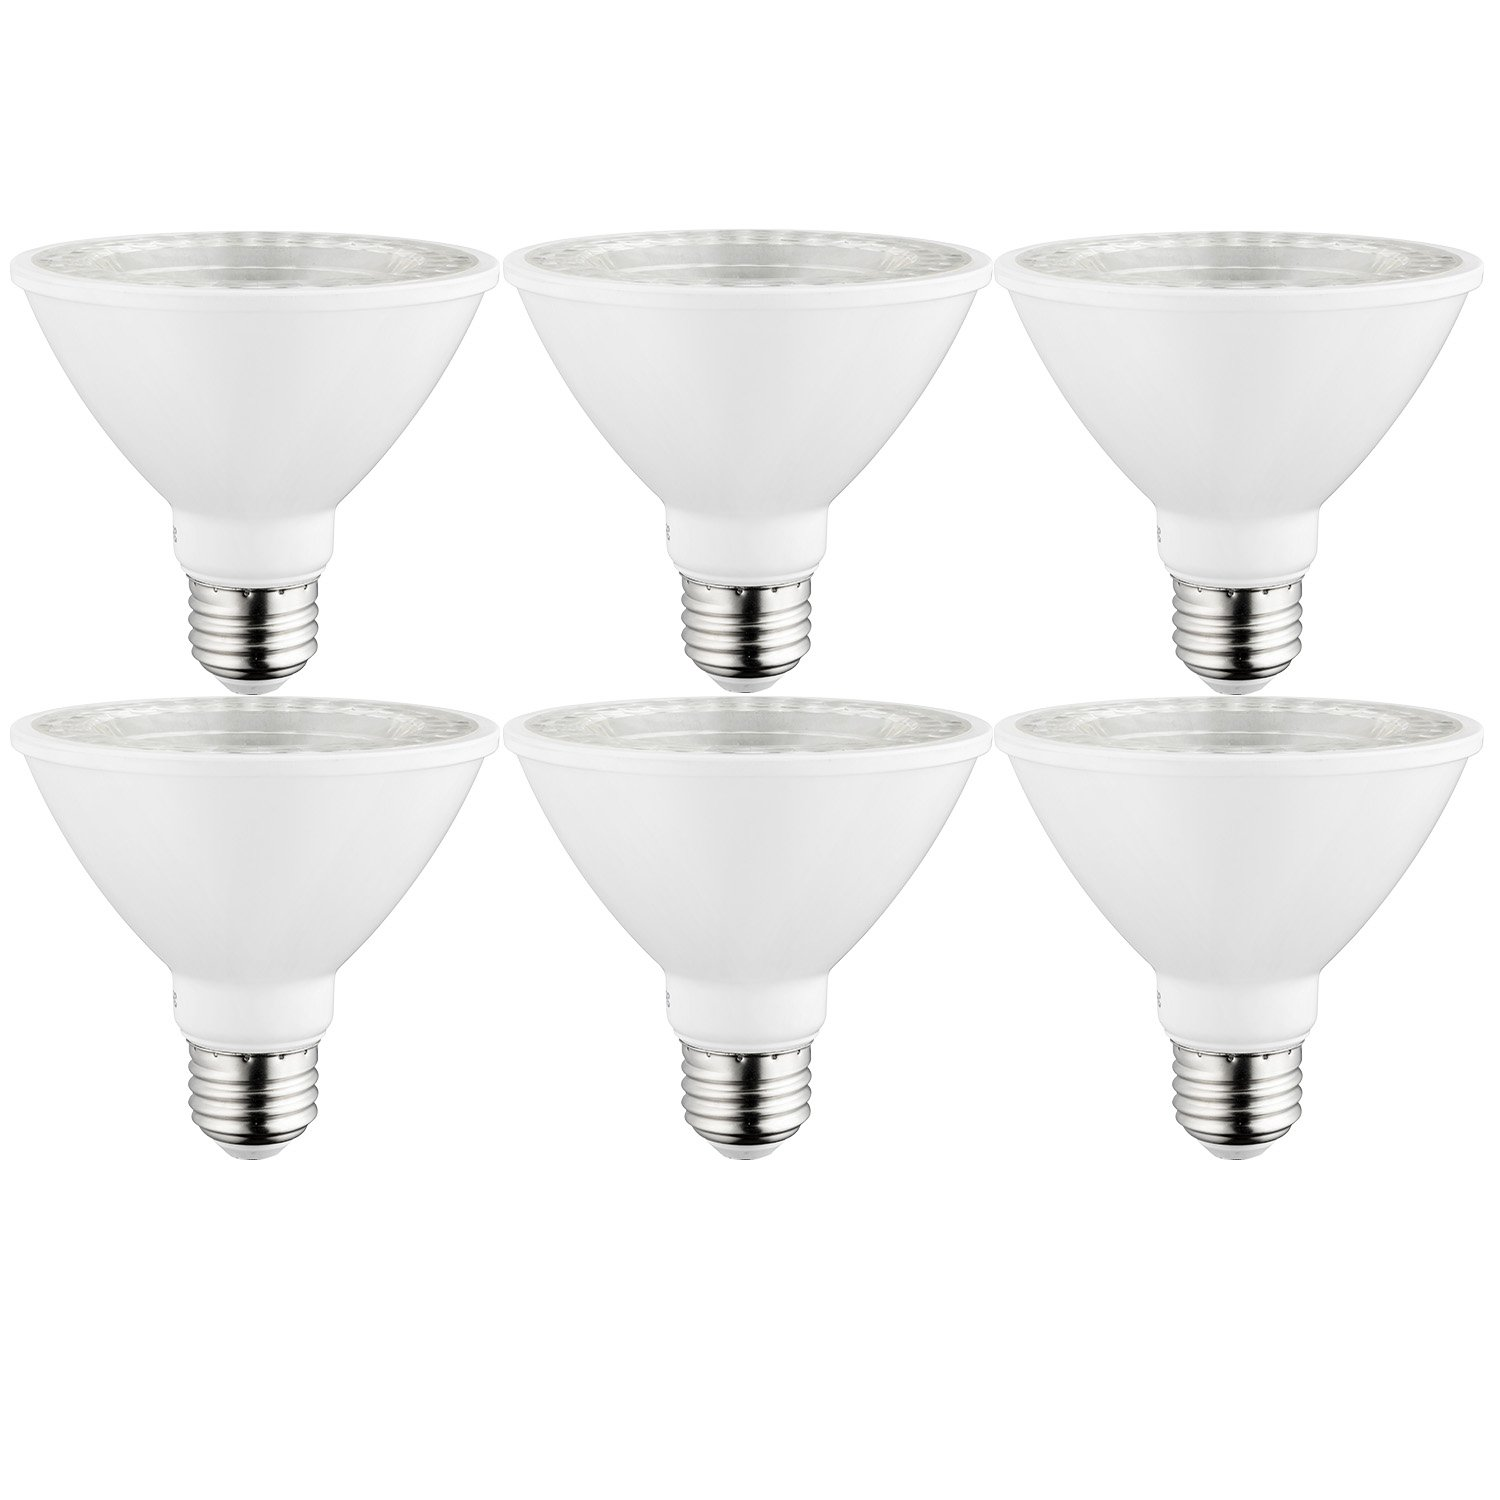 Sunlite 40979-SU LED PAR30 Short Neck Light Bulb, Dimmable, Energy Star 10 Watt, (75W Equivalent), Medium Screw (E26) Base 6 Pack 27K - Warm White 6